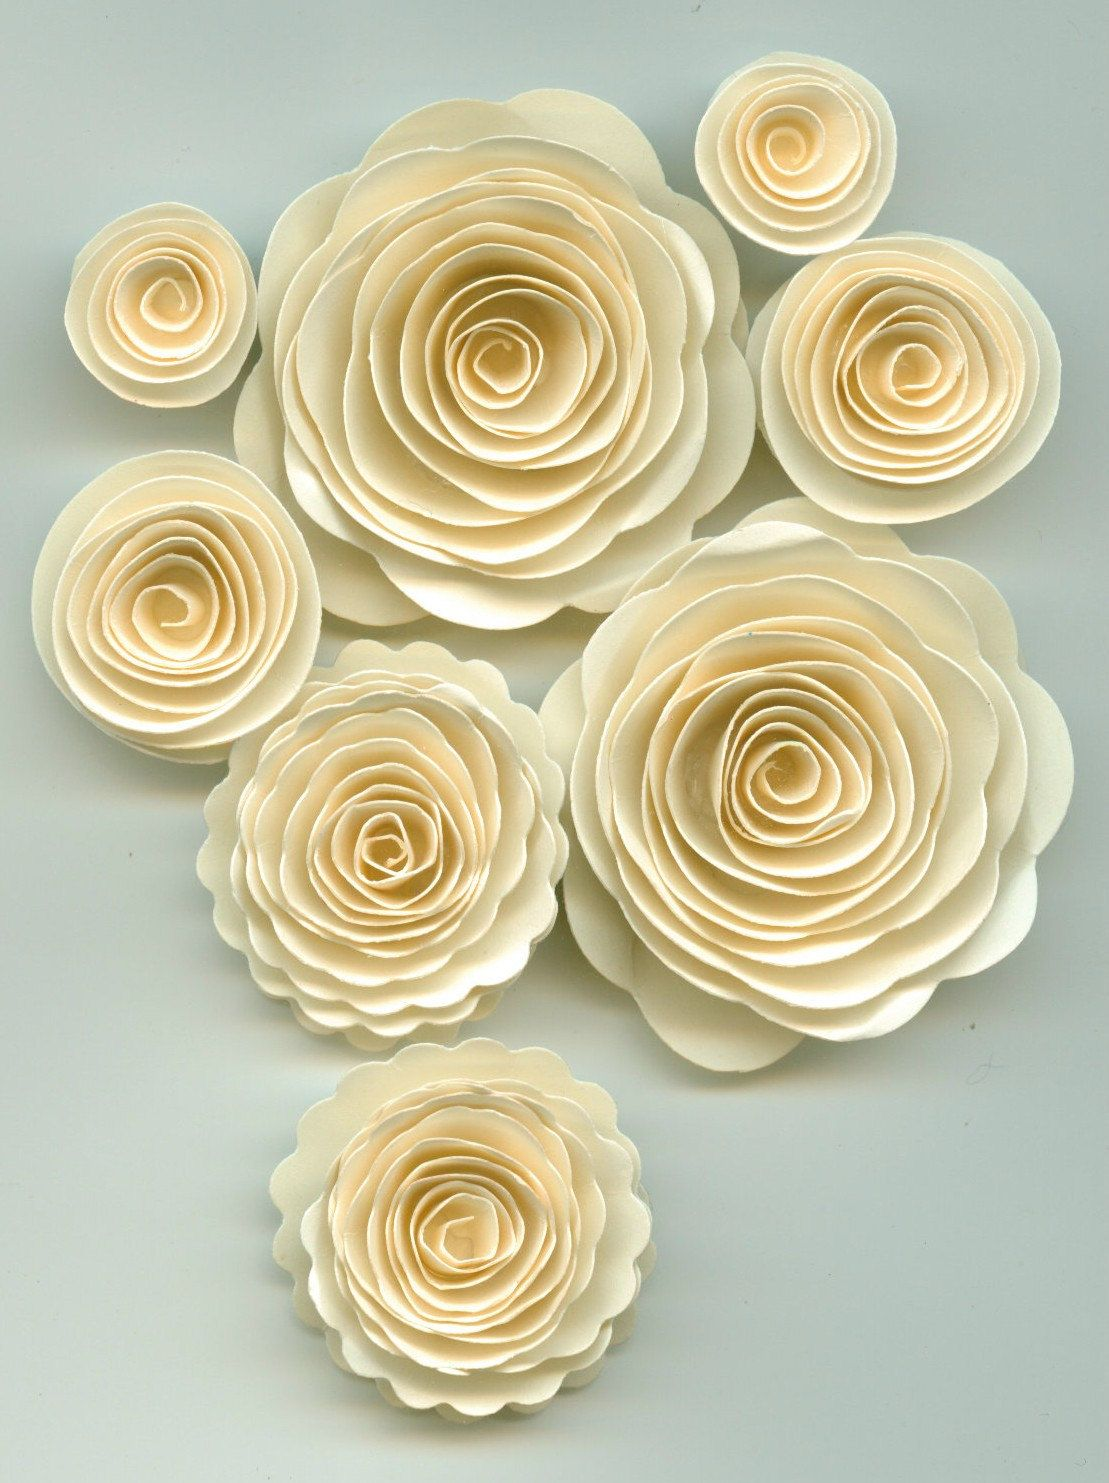 Sand Ivory Rose Spiral Paper Flowers For Weddings Bouquets Events